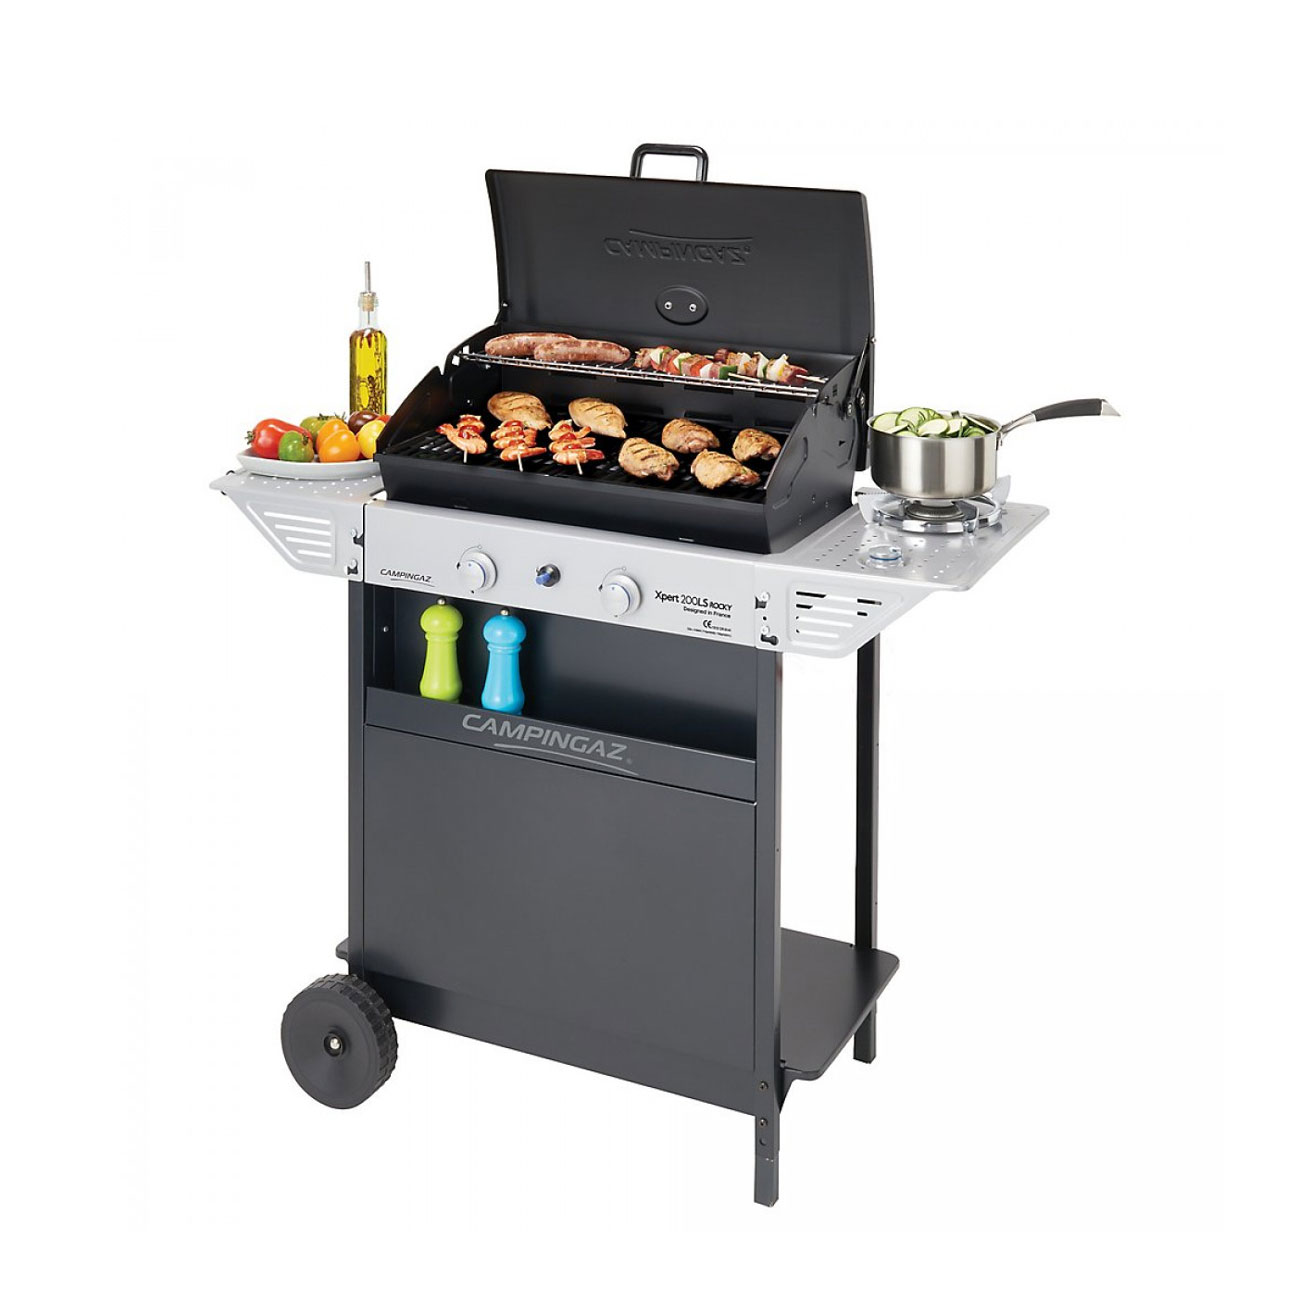 Campingaz XPERT 200 LS Gas Outback BBQ-Barbecue